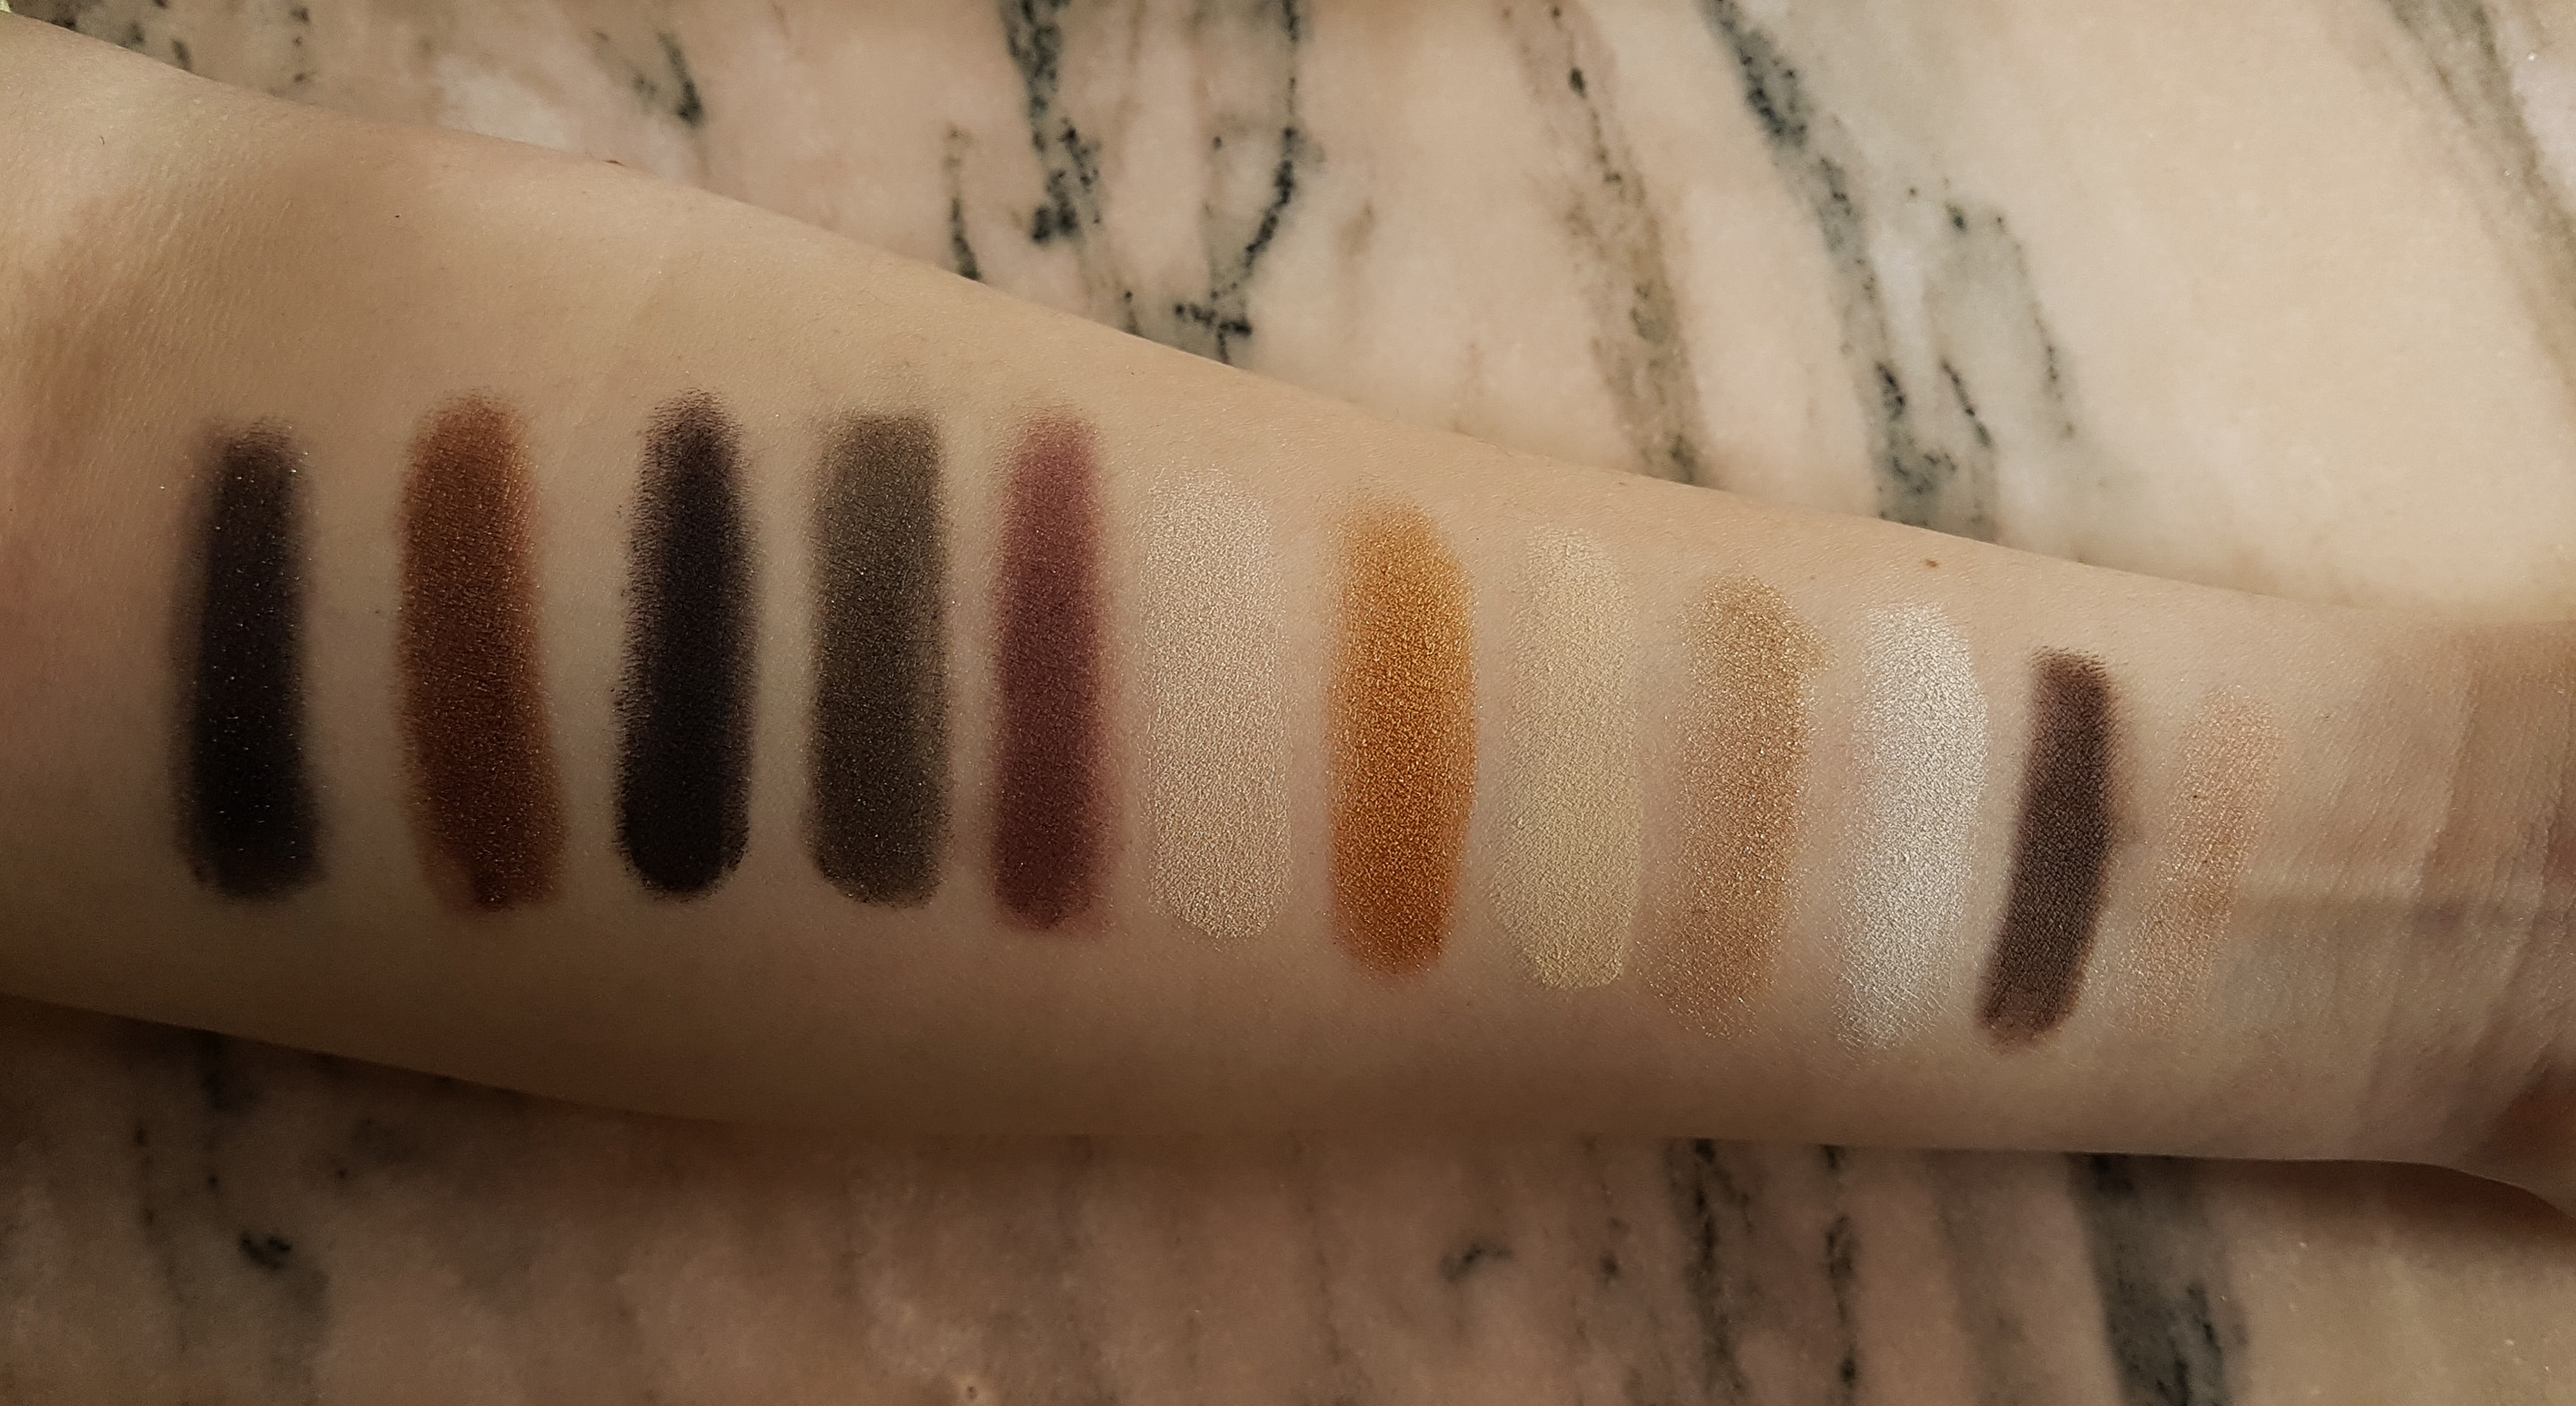 maybelline 24 k nudes palette swatches anothersid